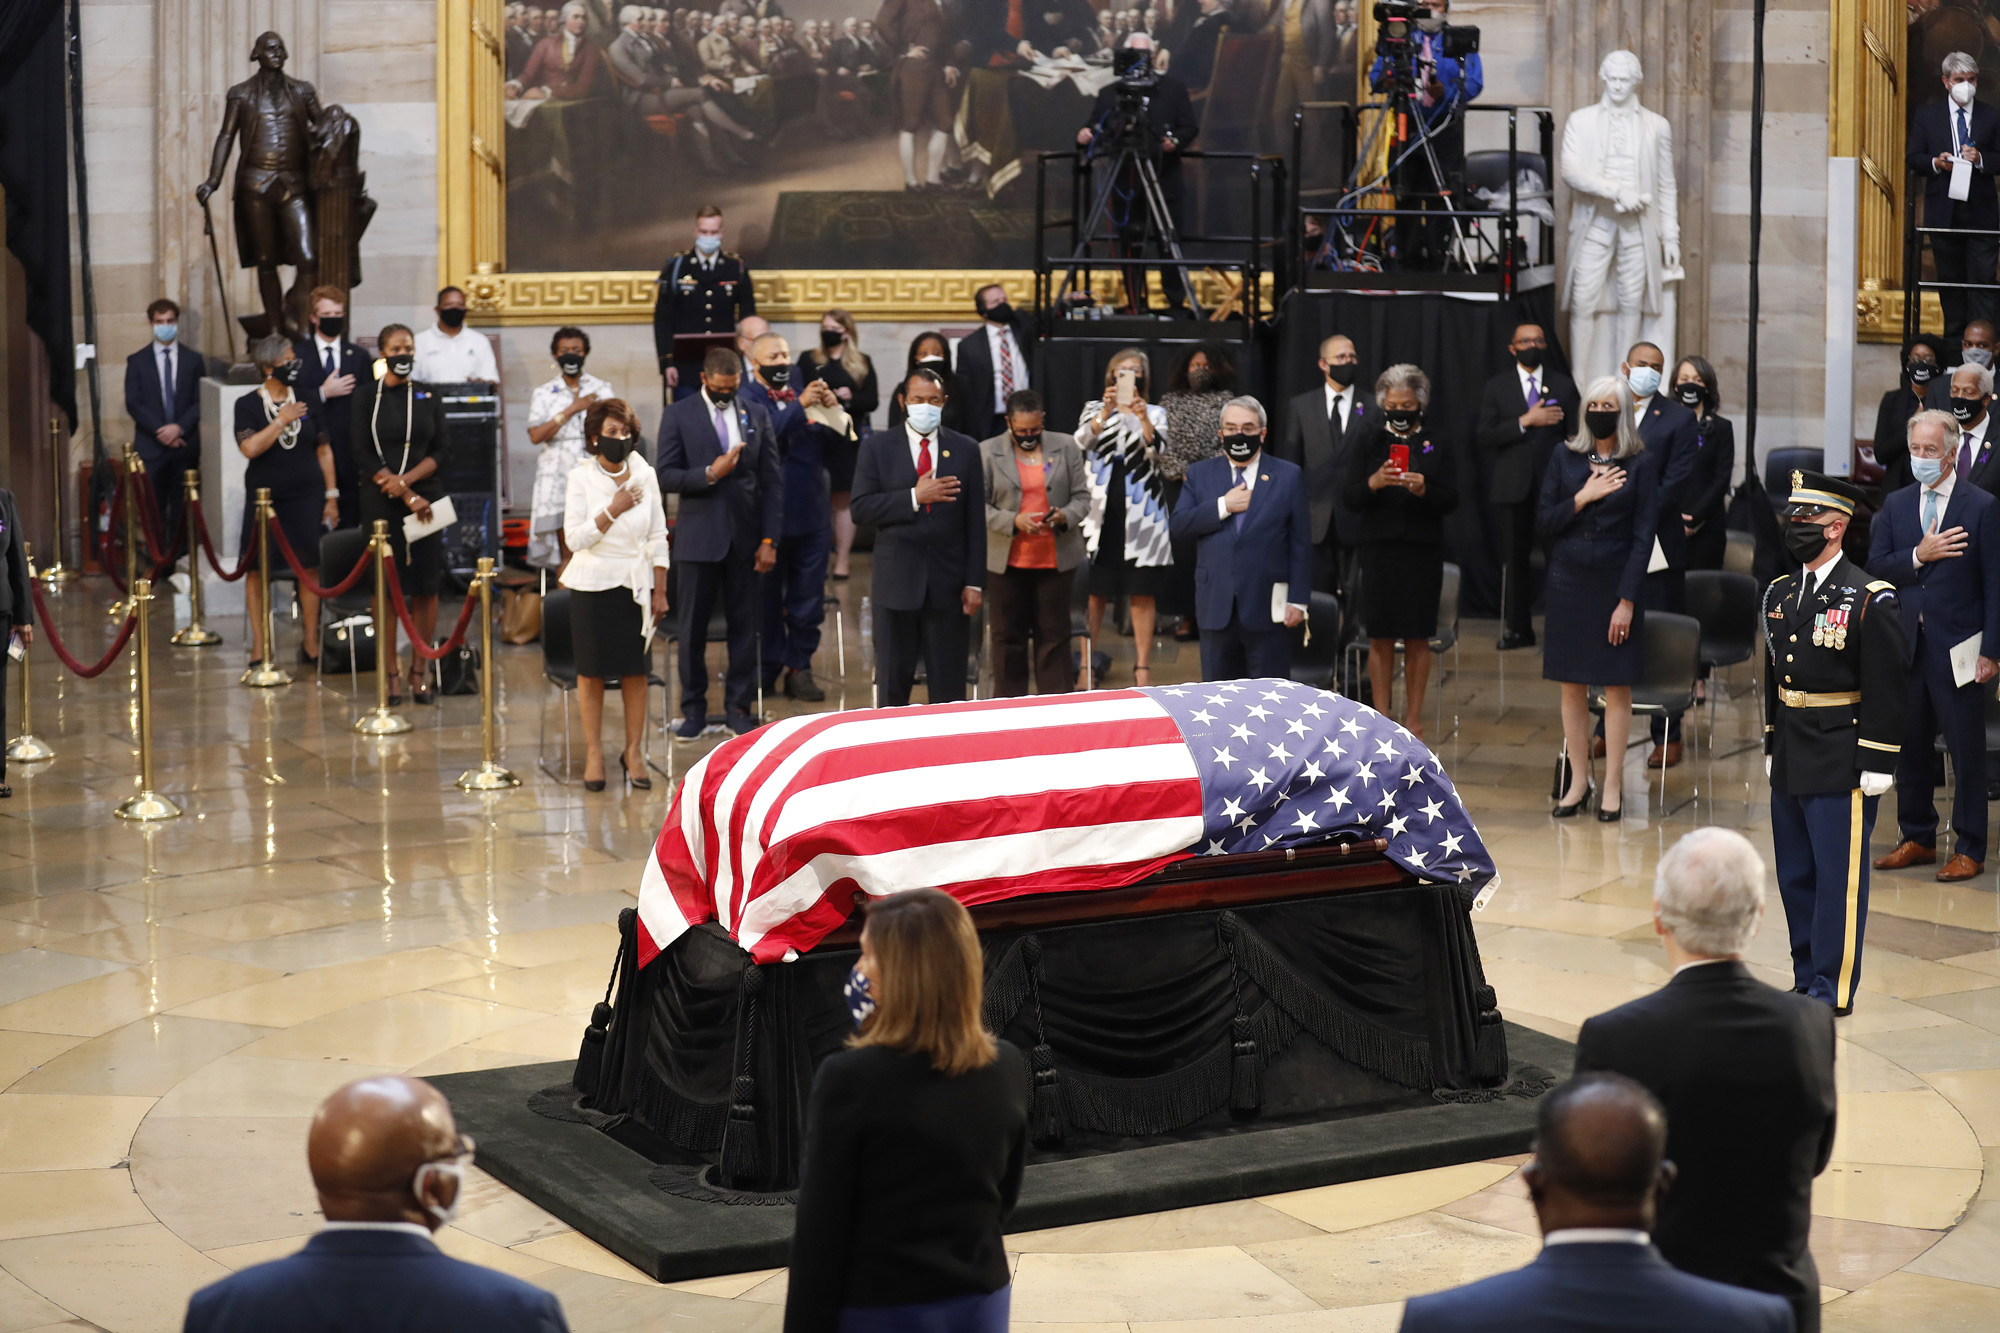 The casket of Rep. John Lewis arrives for a memorial service in the Capitol Rotunda on July 27 in Washington, DC.